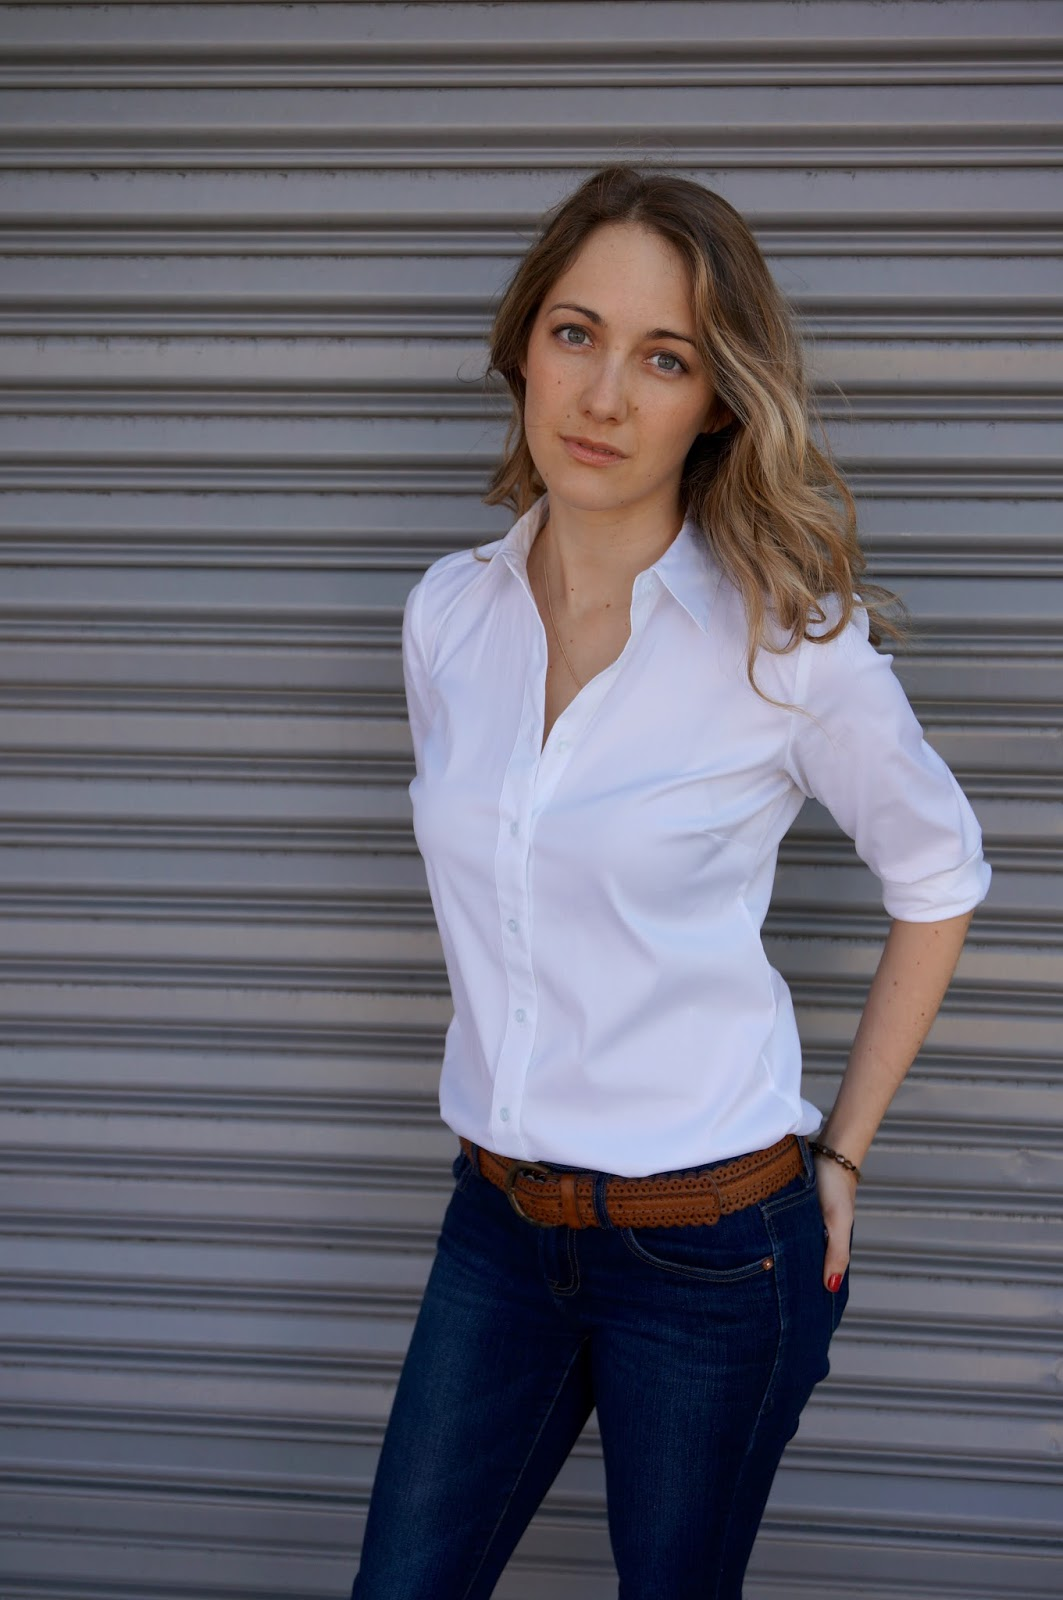 The Perfect White Button Down Blouse - www.greysuede.com